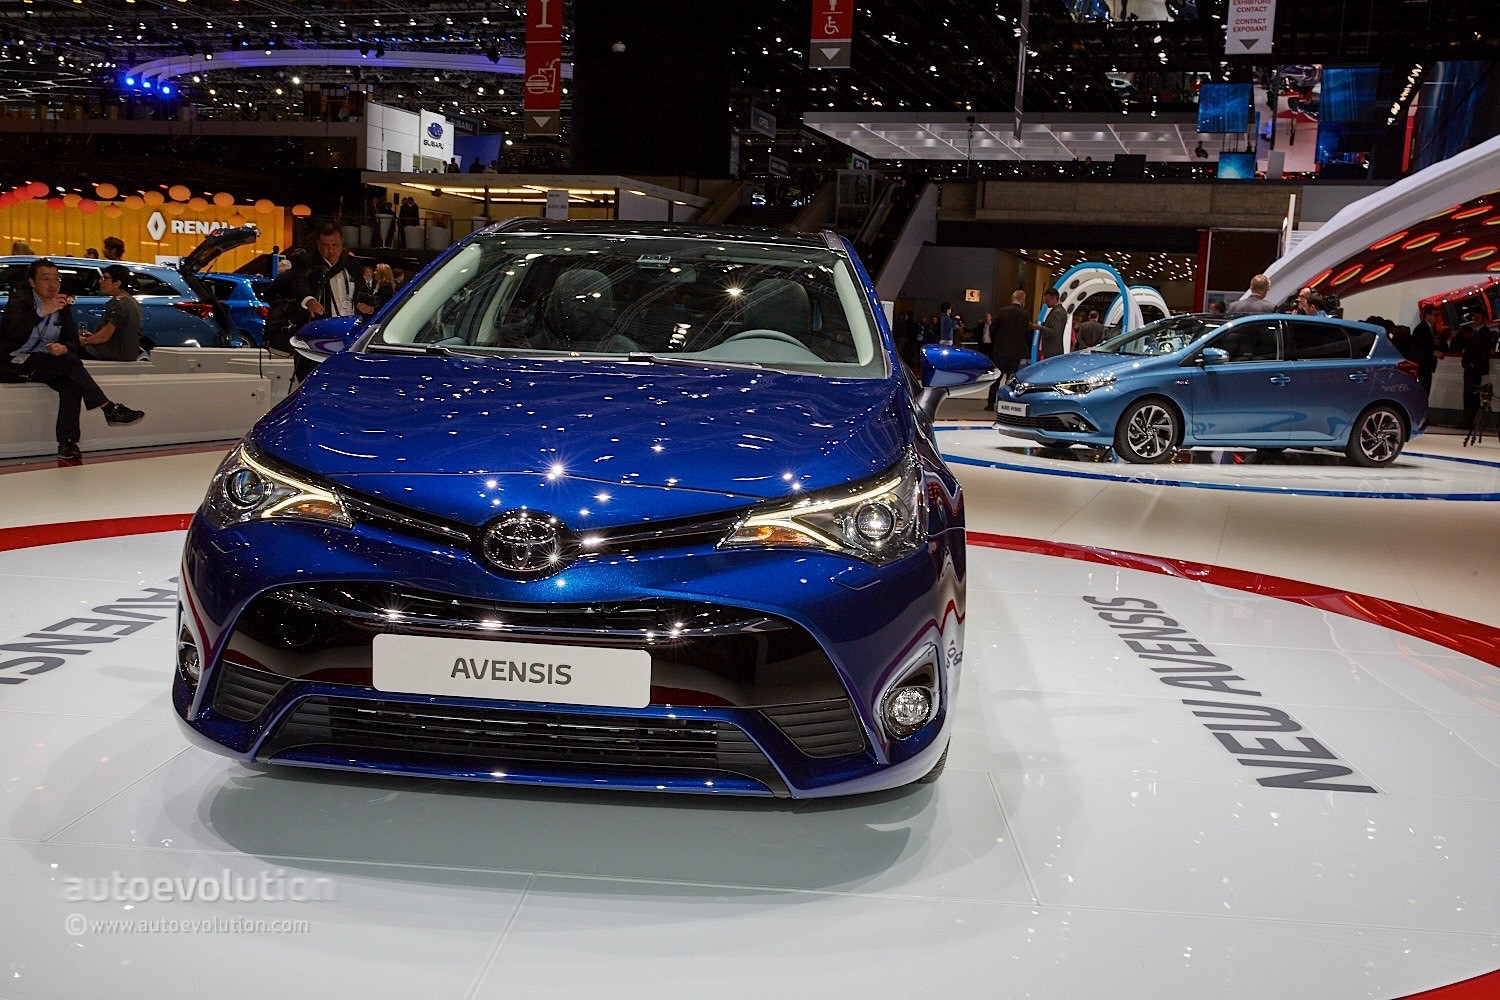 2015 Toyota Avensis Facelift Looks Sharper Than Ever In Geneva ...